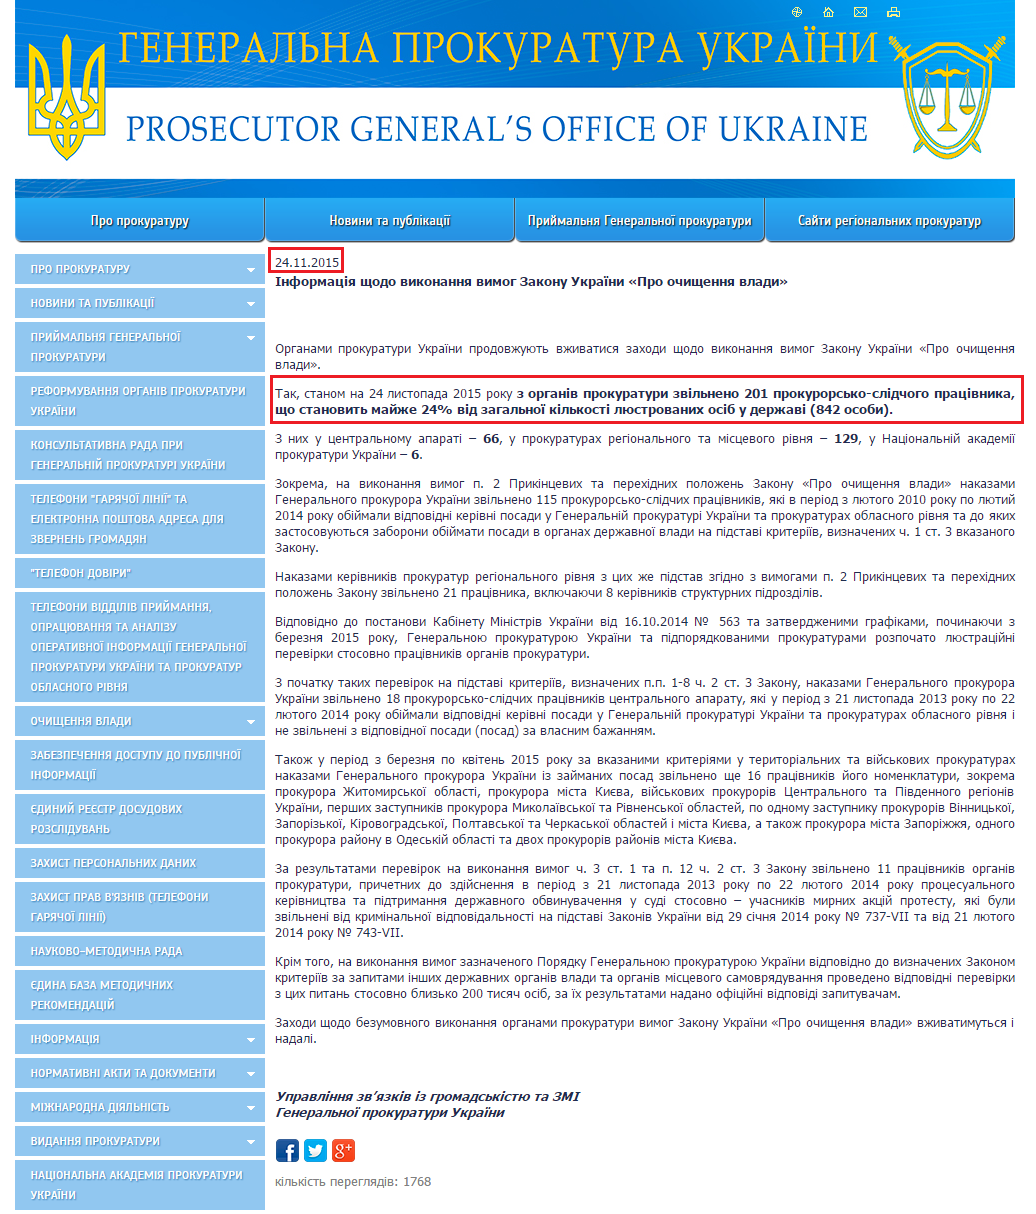 http://www.gp.gov.ua/ua/news.html?_m=publications&_c=view&_t=rec&id=165926